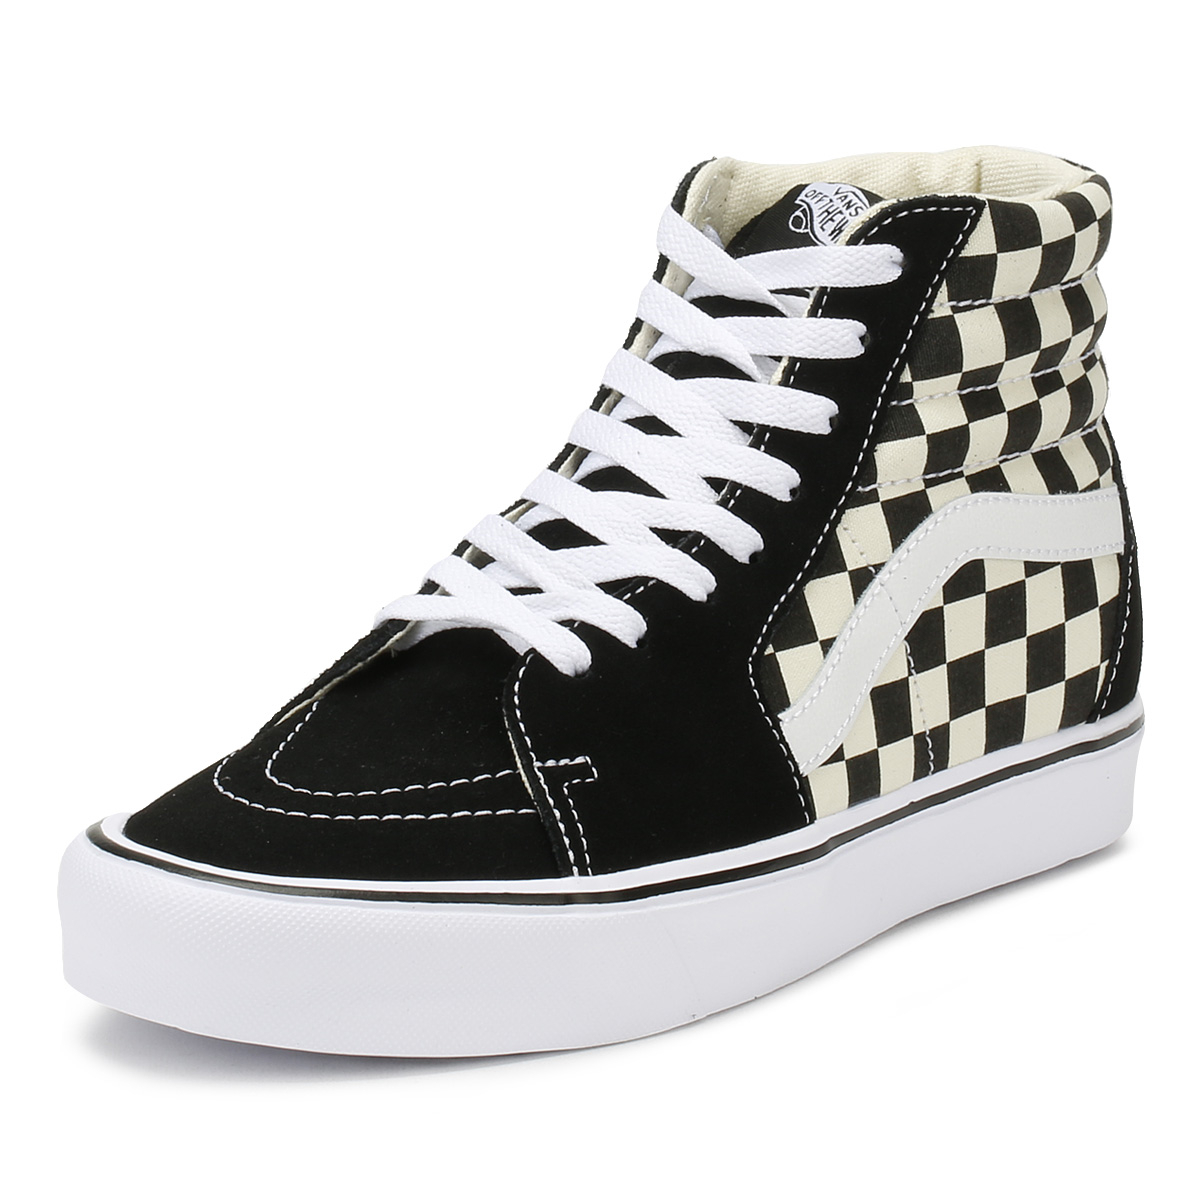 1d4be8759d531f Details about Vans Unisex Black   White Trainers Checkerboard SK8-Hi Lite  Lace Up Skate Shoes